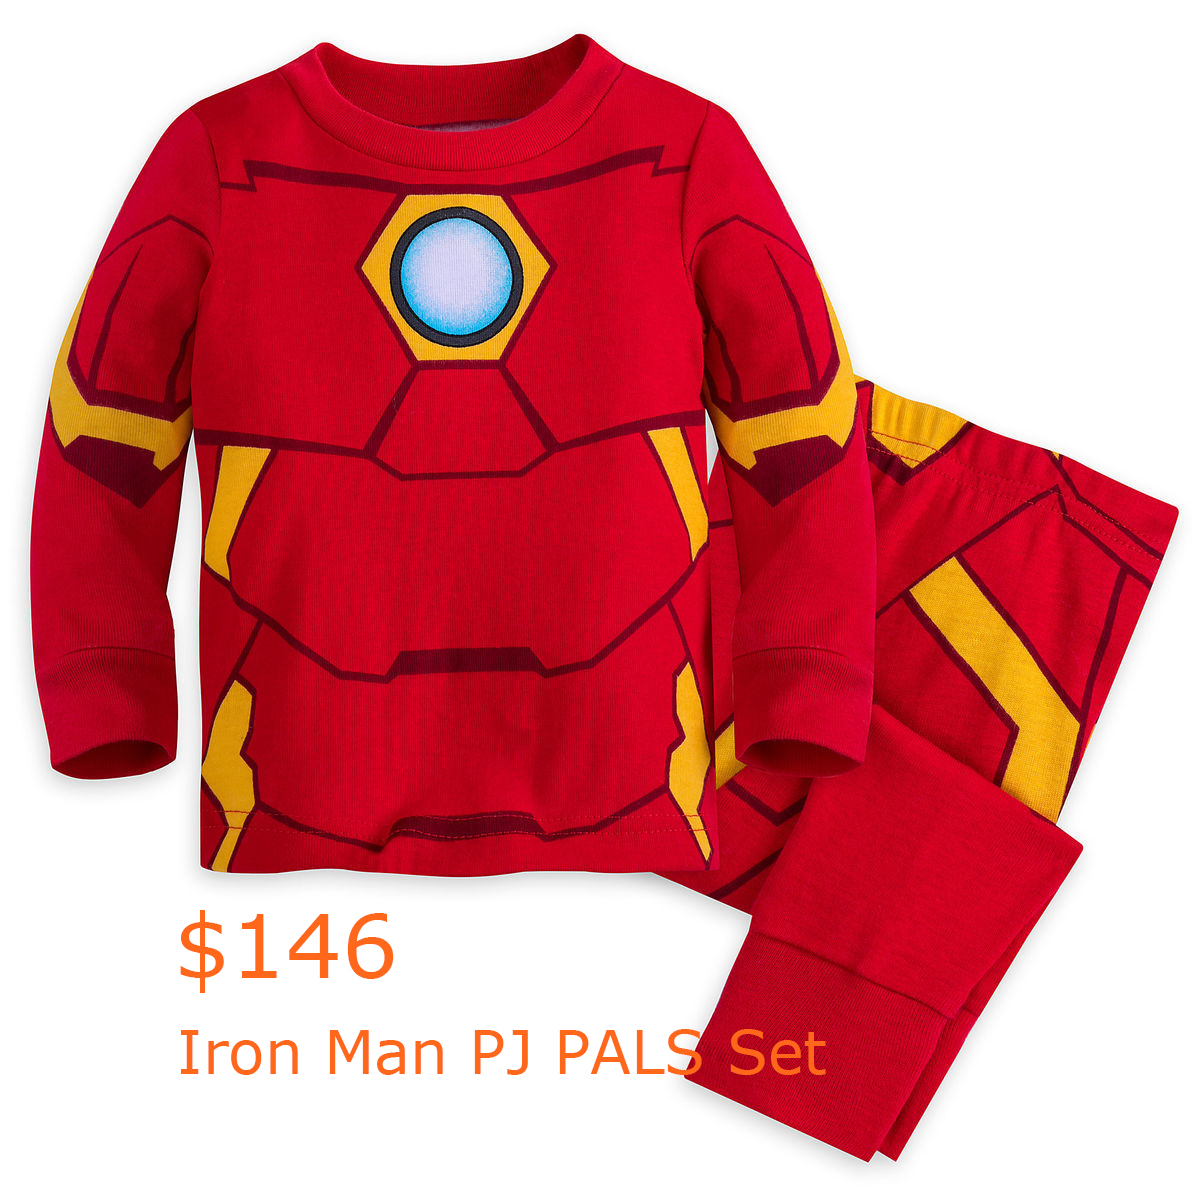 146Iron Man PJ PALS Set